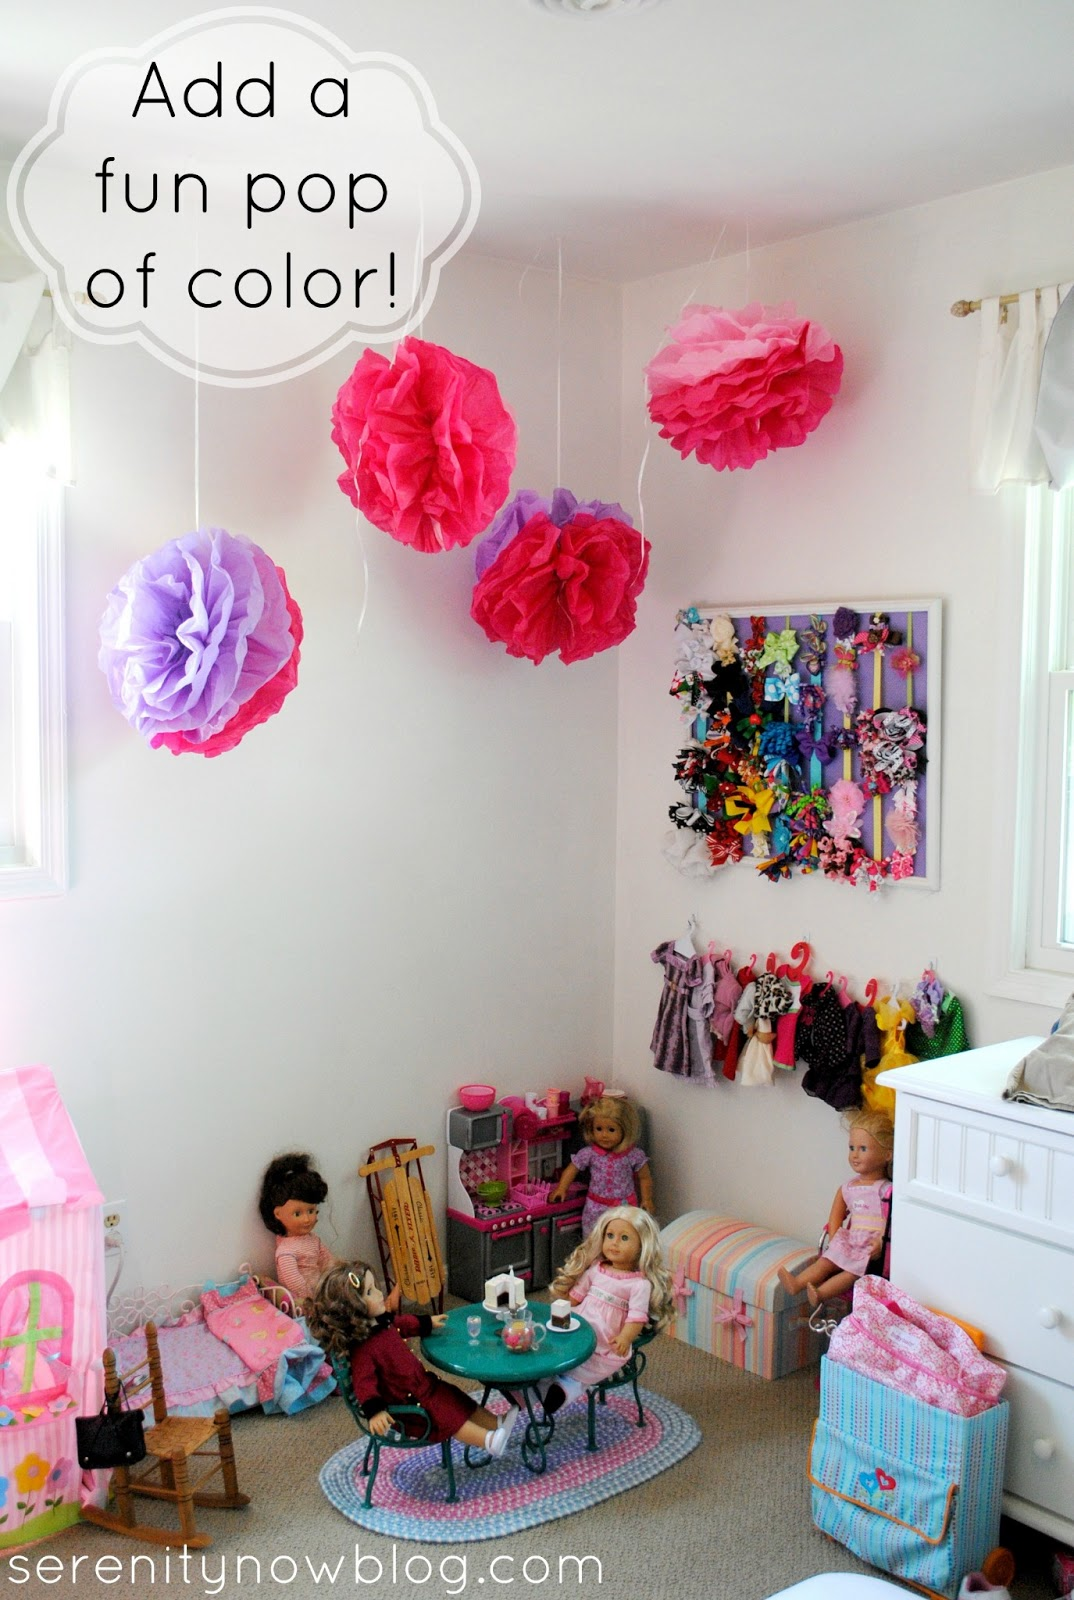 Hang Tissue Paper Pom Poms From The Ceiling For A Pop Of Color Serenity